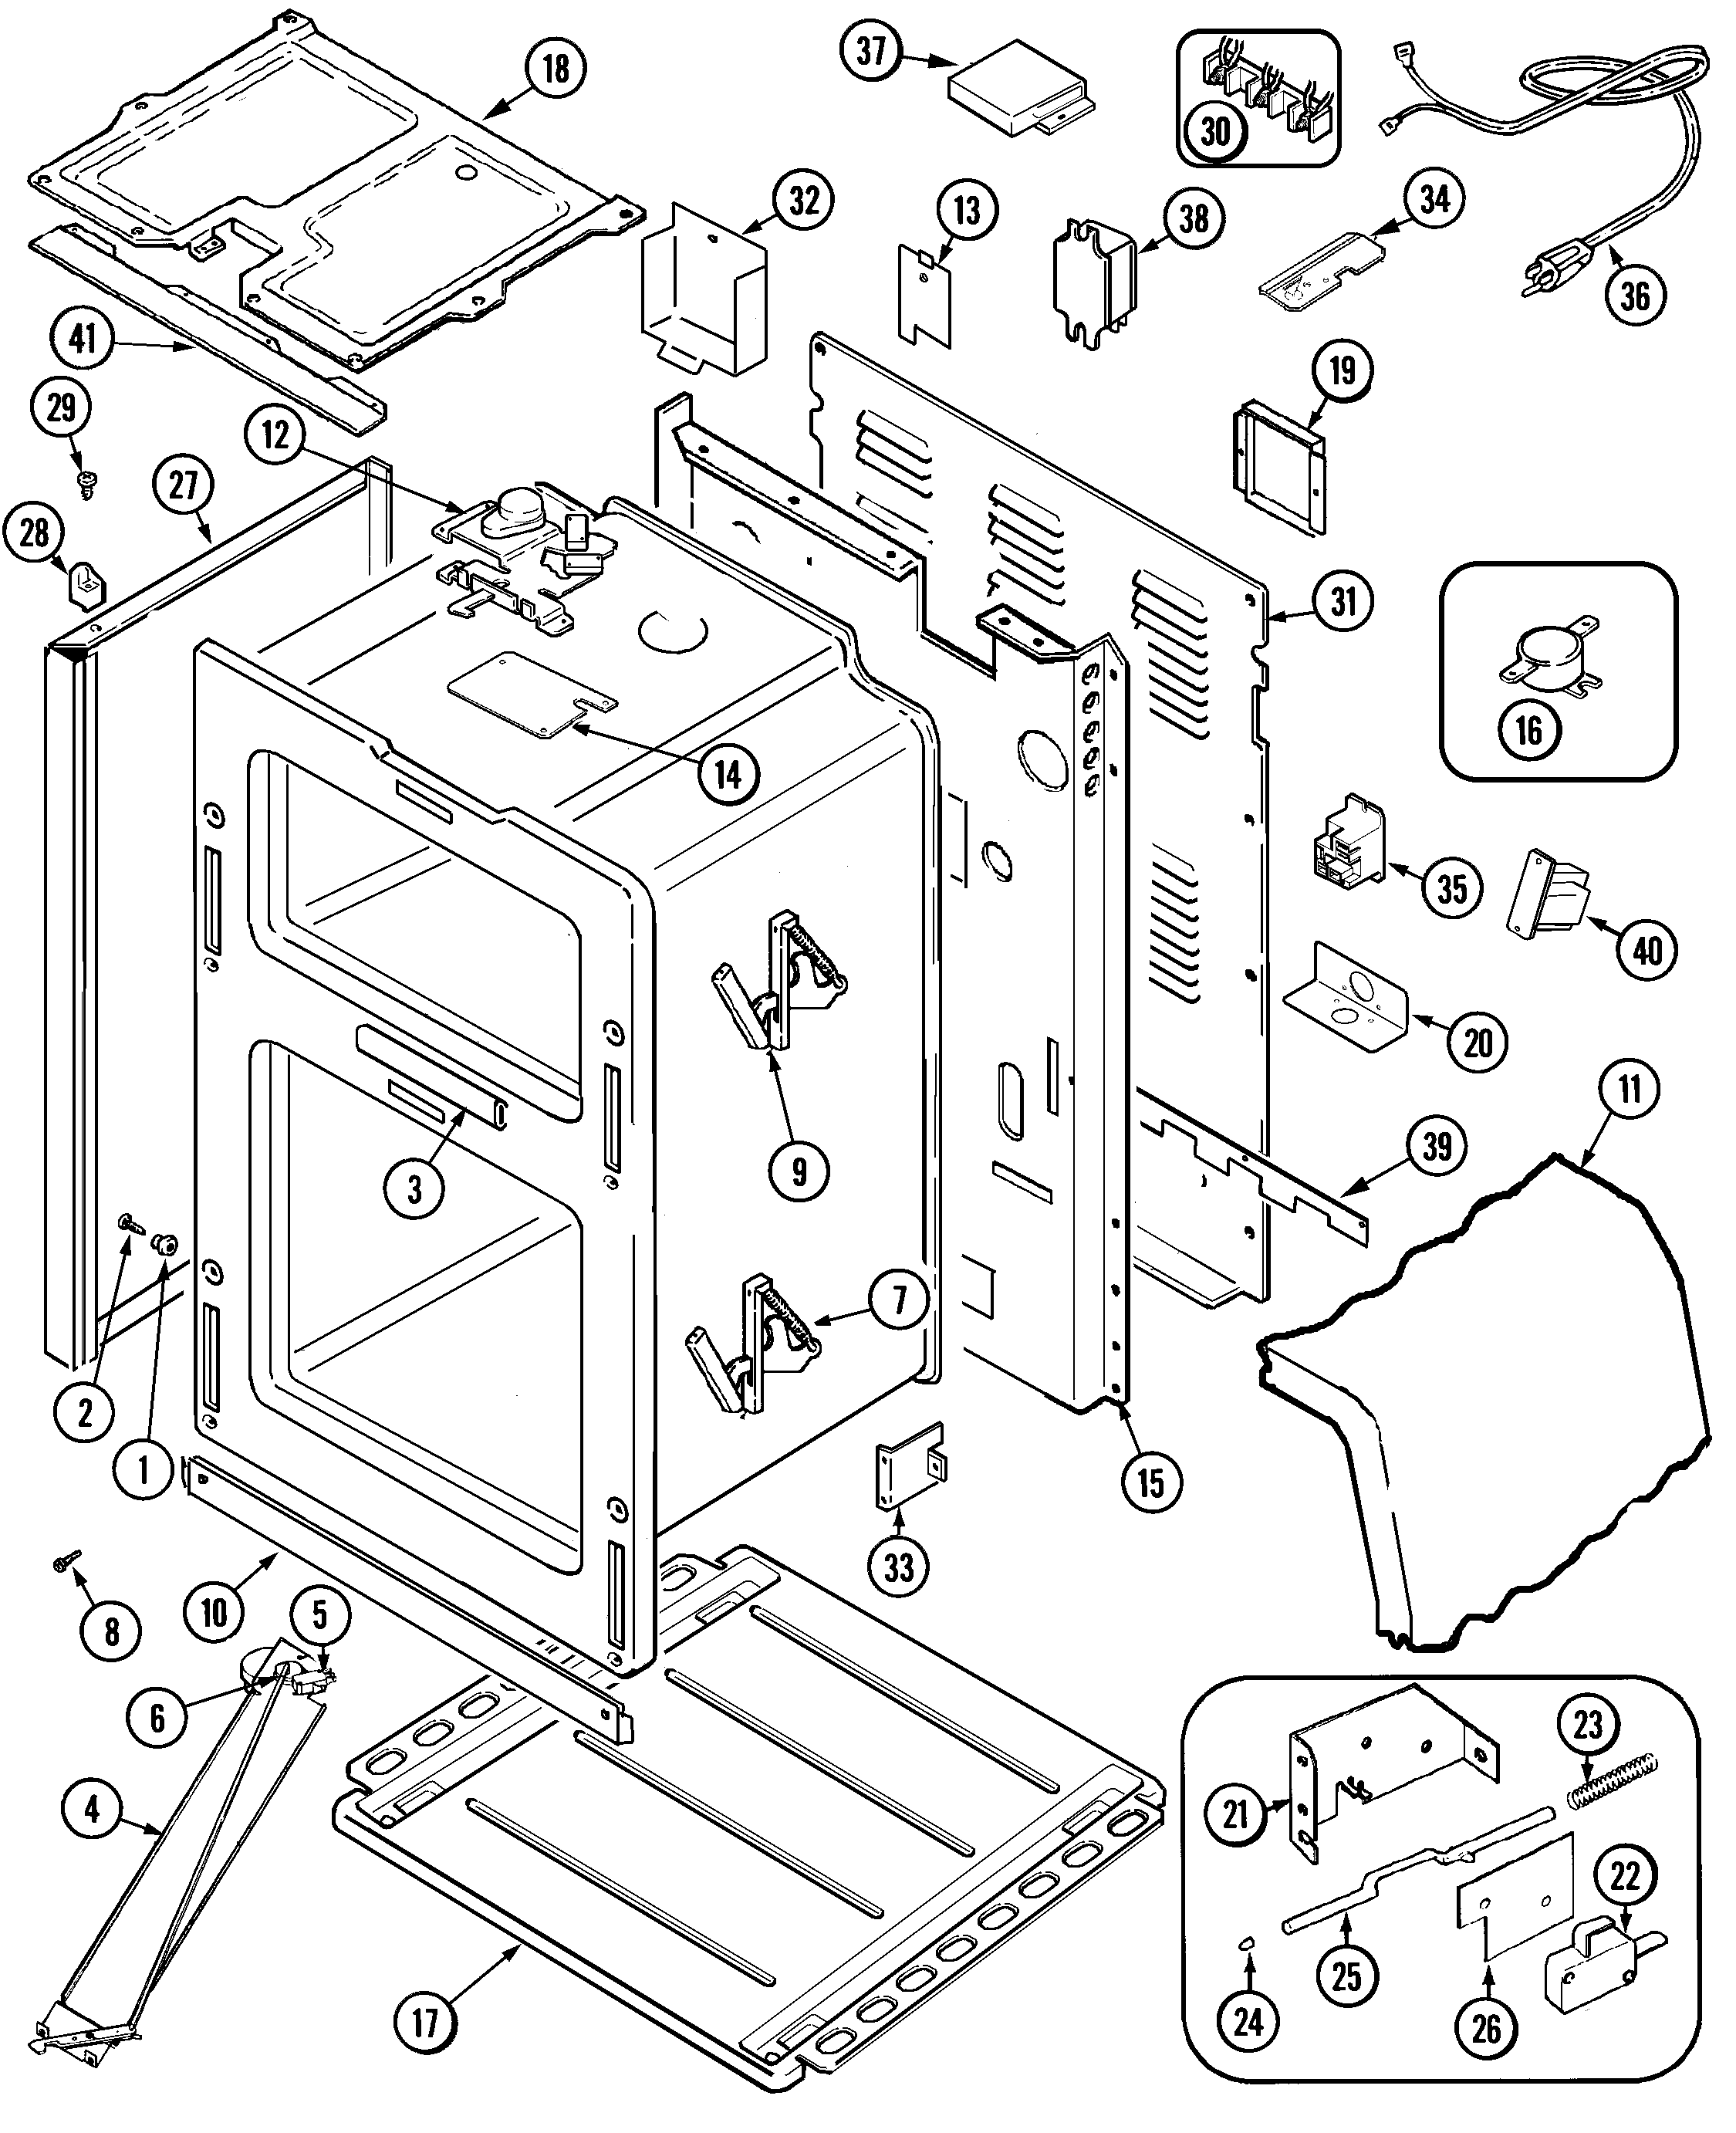 Maytag Mer6772bcw Range Timer Stove Clocks And Appliance Timers Wiring Diagram Smeg Oven Body Parts